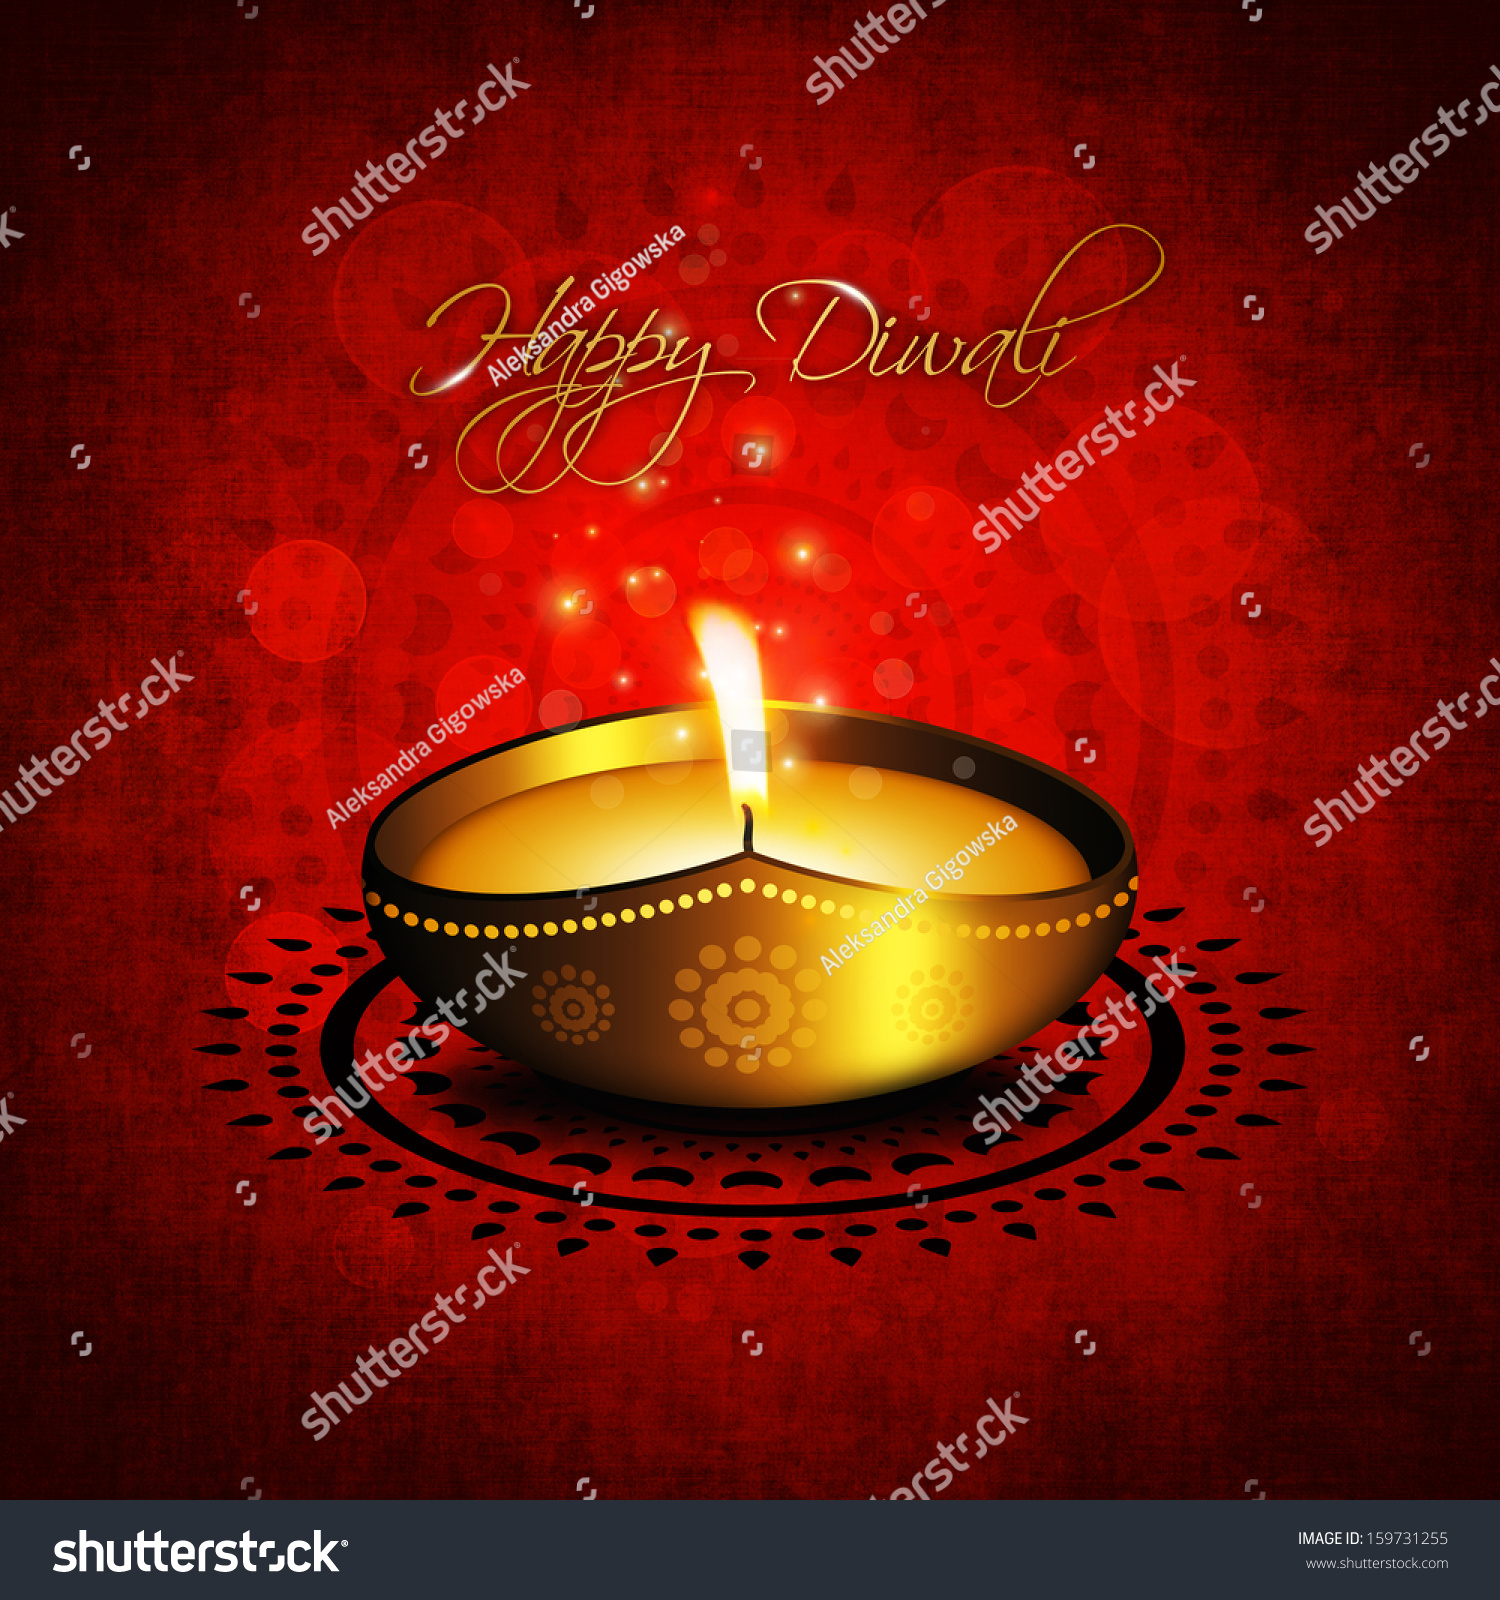 Oil lamp diwali diya greetings over stock illustration 159731255 oil lamp with diwali diya greetings over red background kristyandbryce Image collections